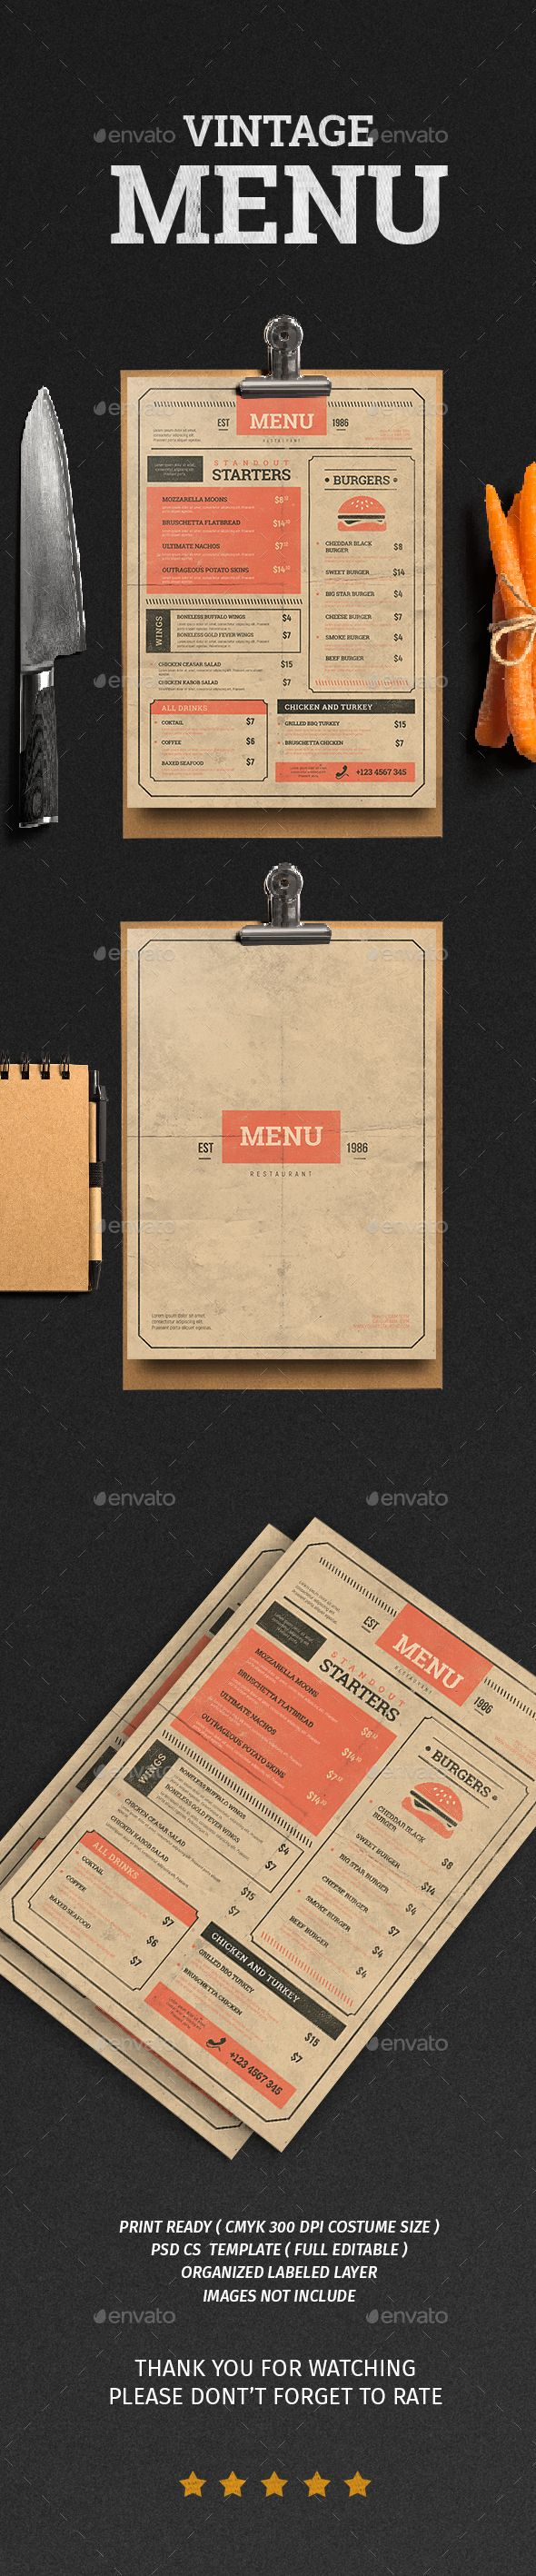 Vintage Food Menu Template PSD